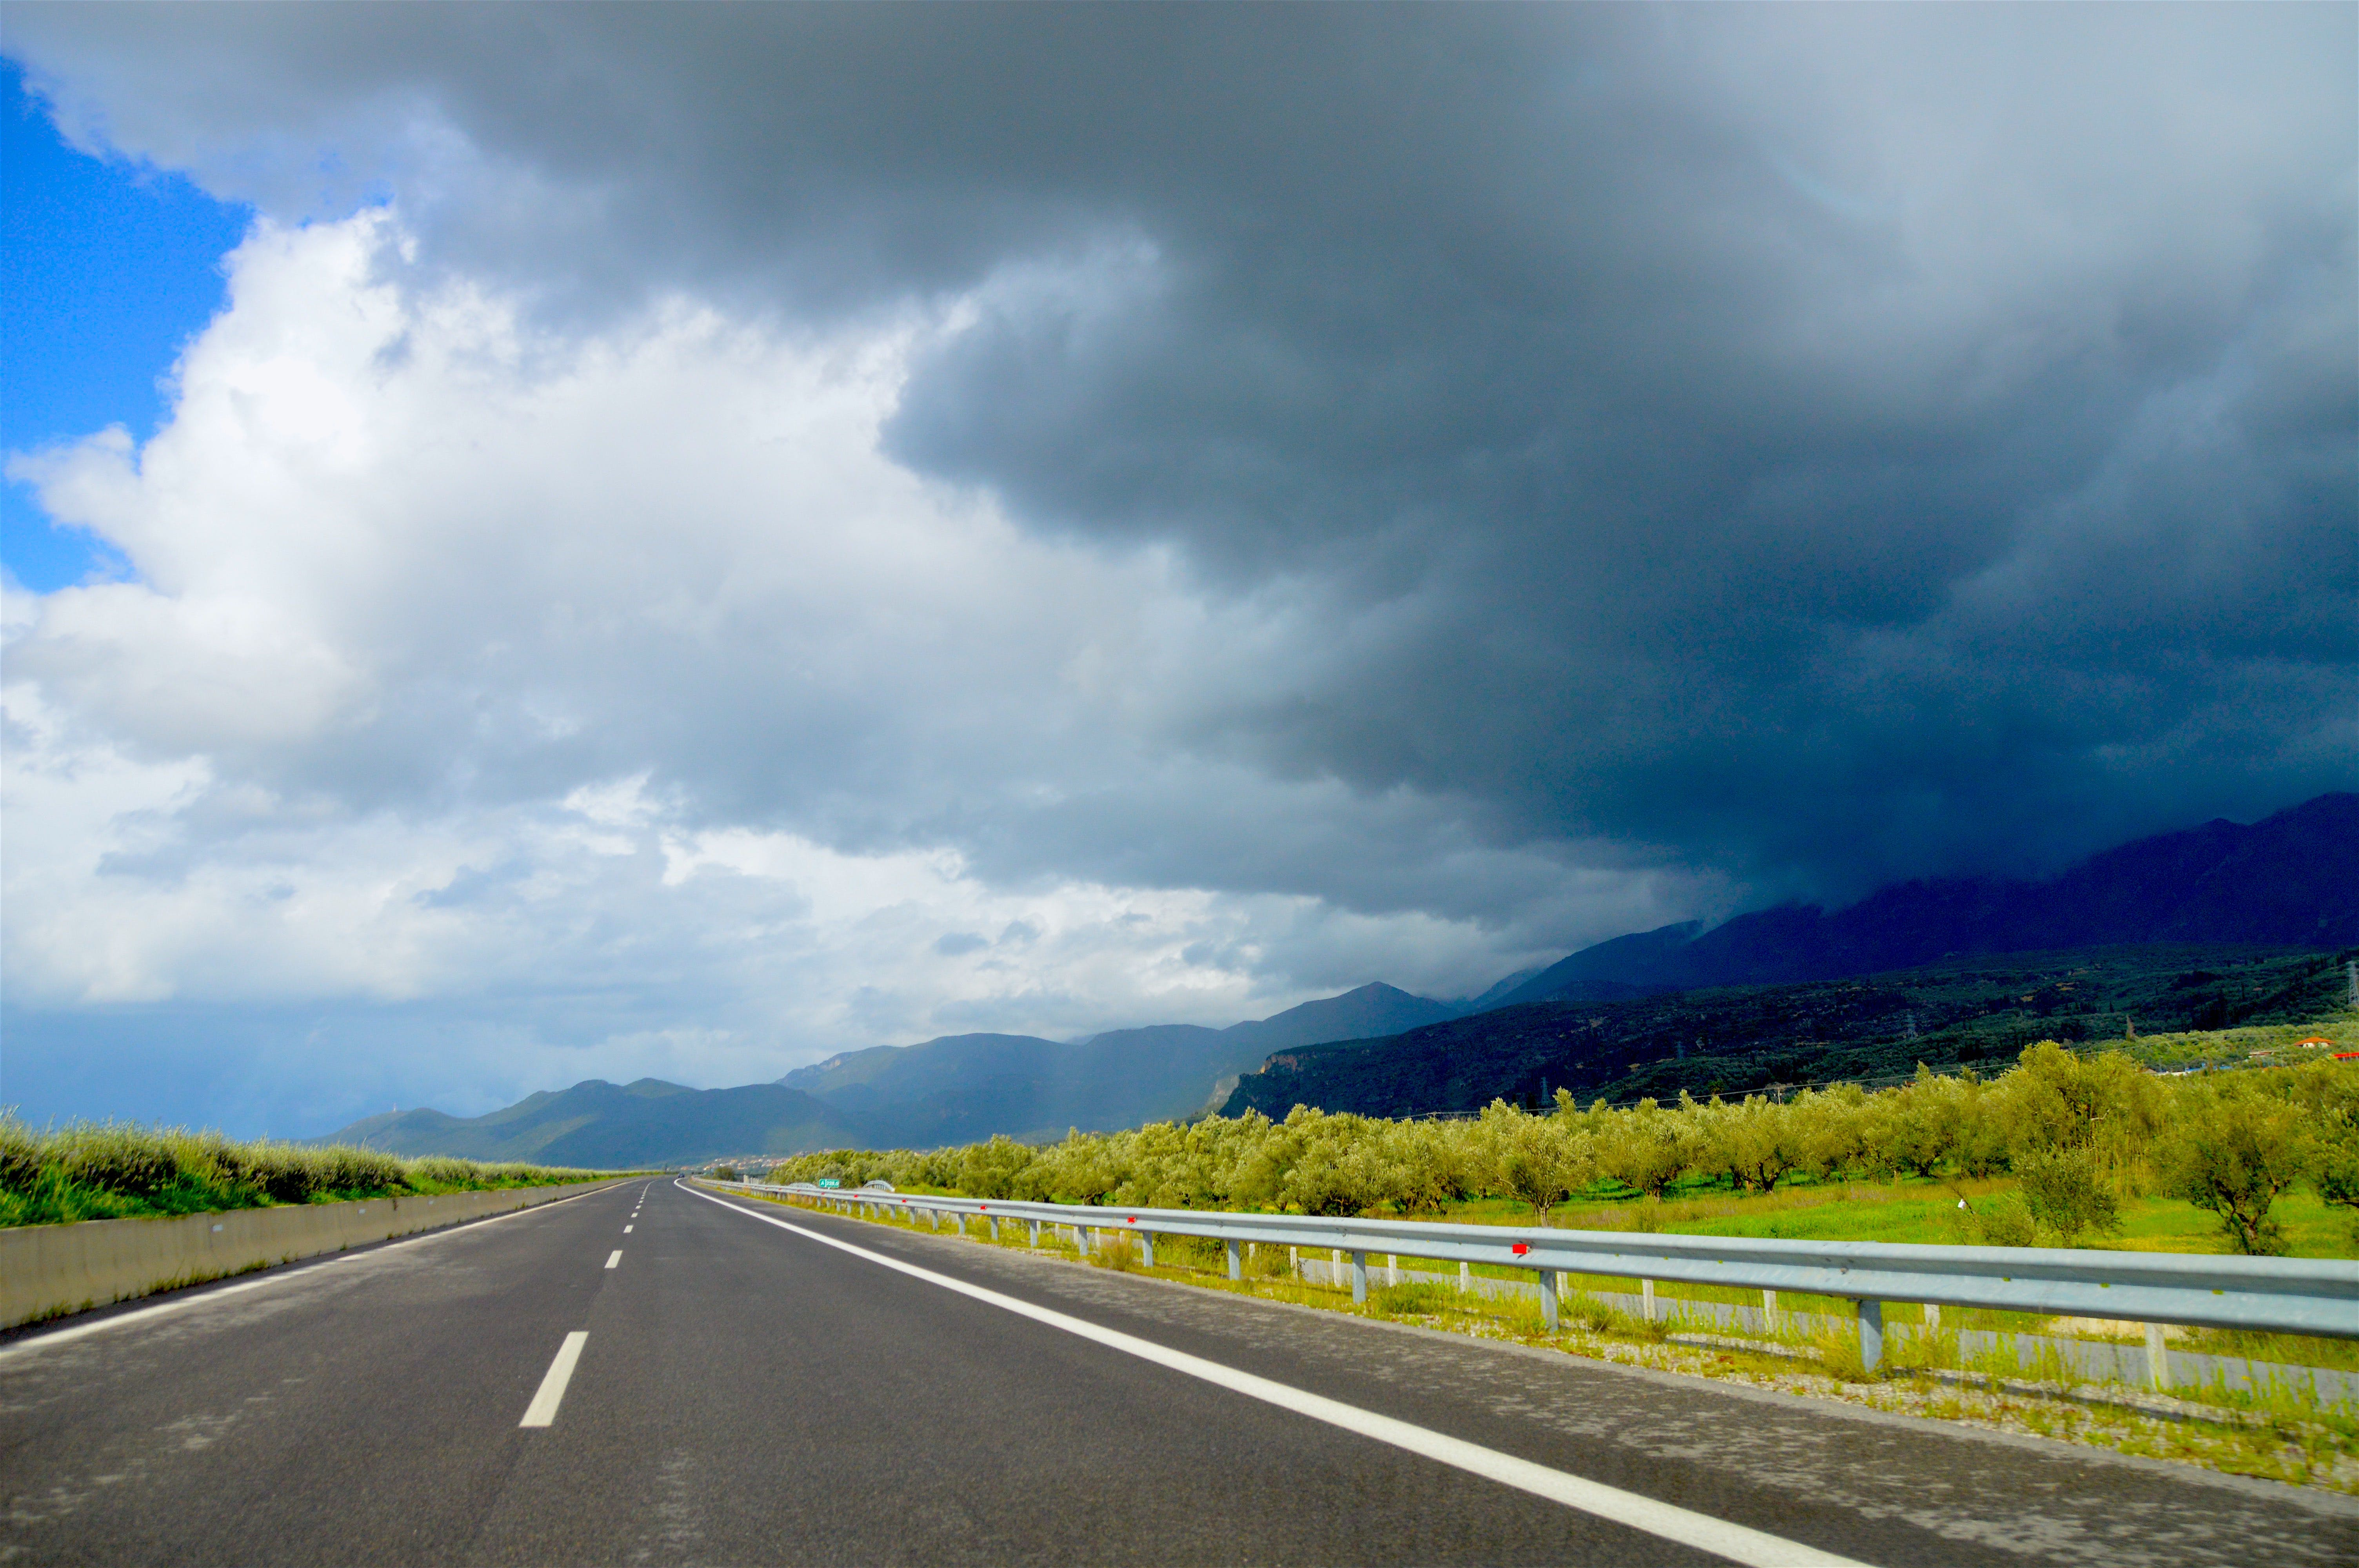 Photo of Road Near Green Leaf Trees Under Dark Clouds at Daytime